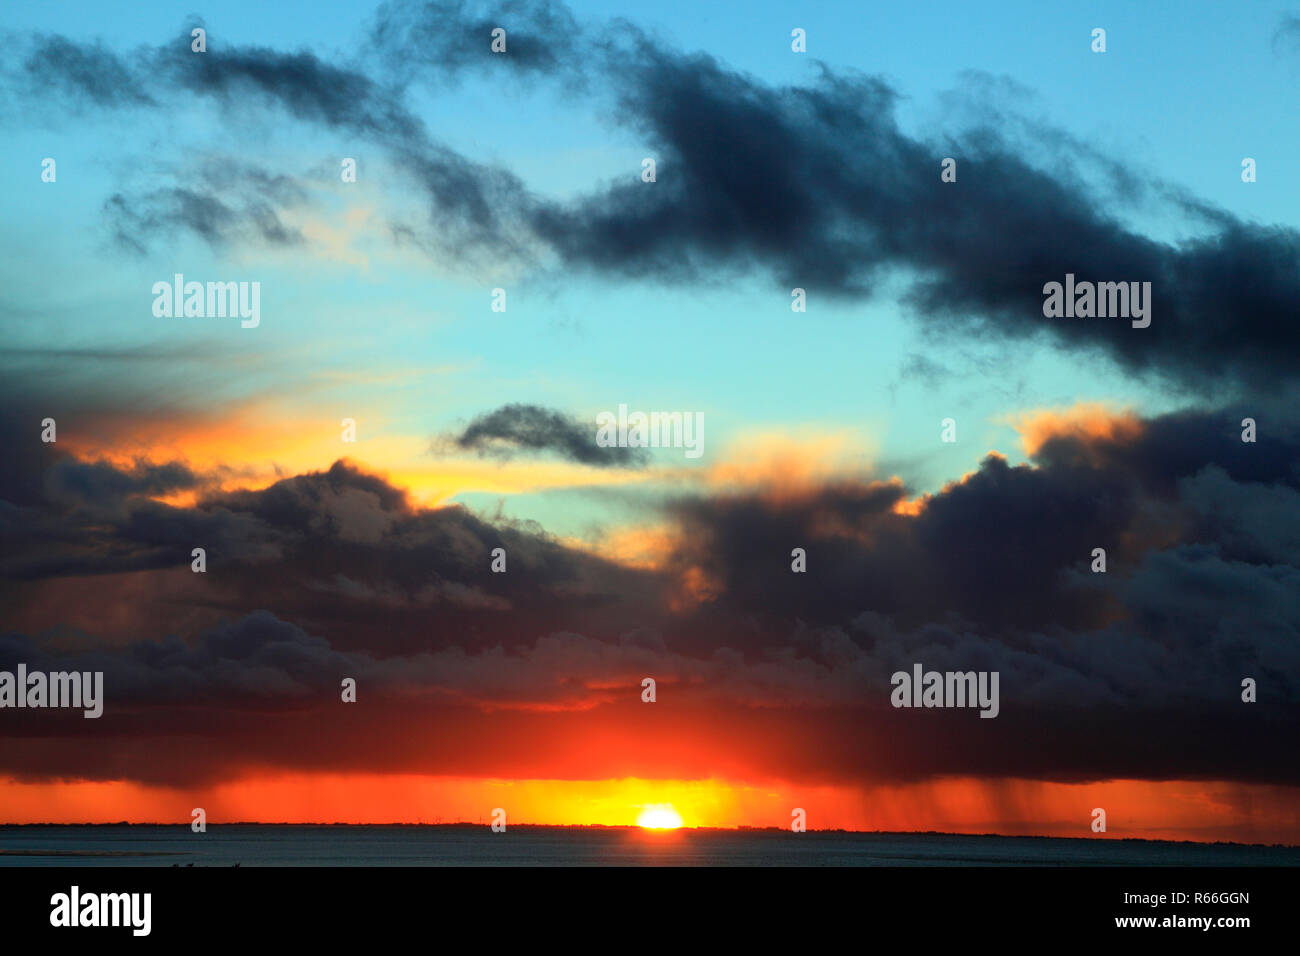 Sunset, red, blue, pink, sky, black clouds, gathering storm, weather, skies,  looking over The Wash, cloud formation, formations, Norfolk, UK - Stock Image